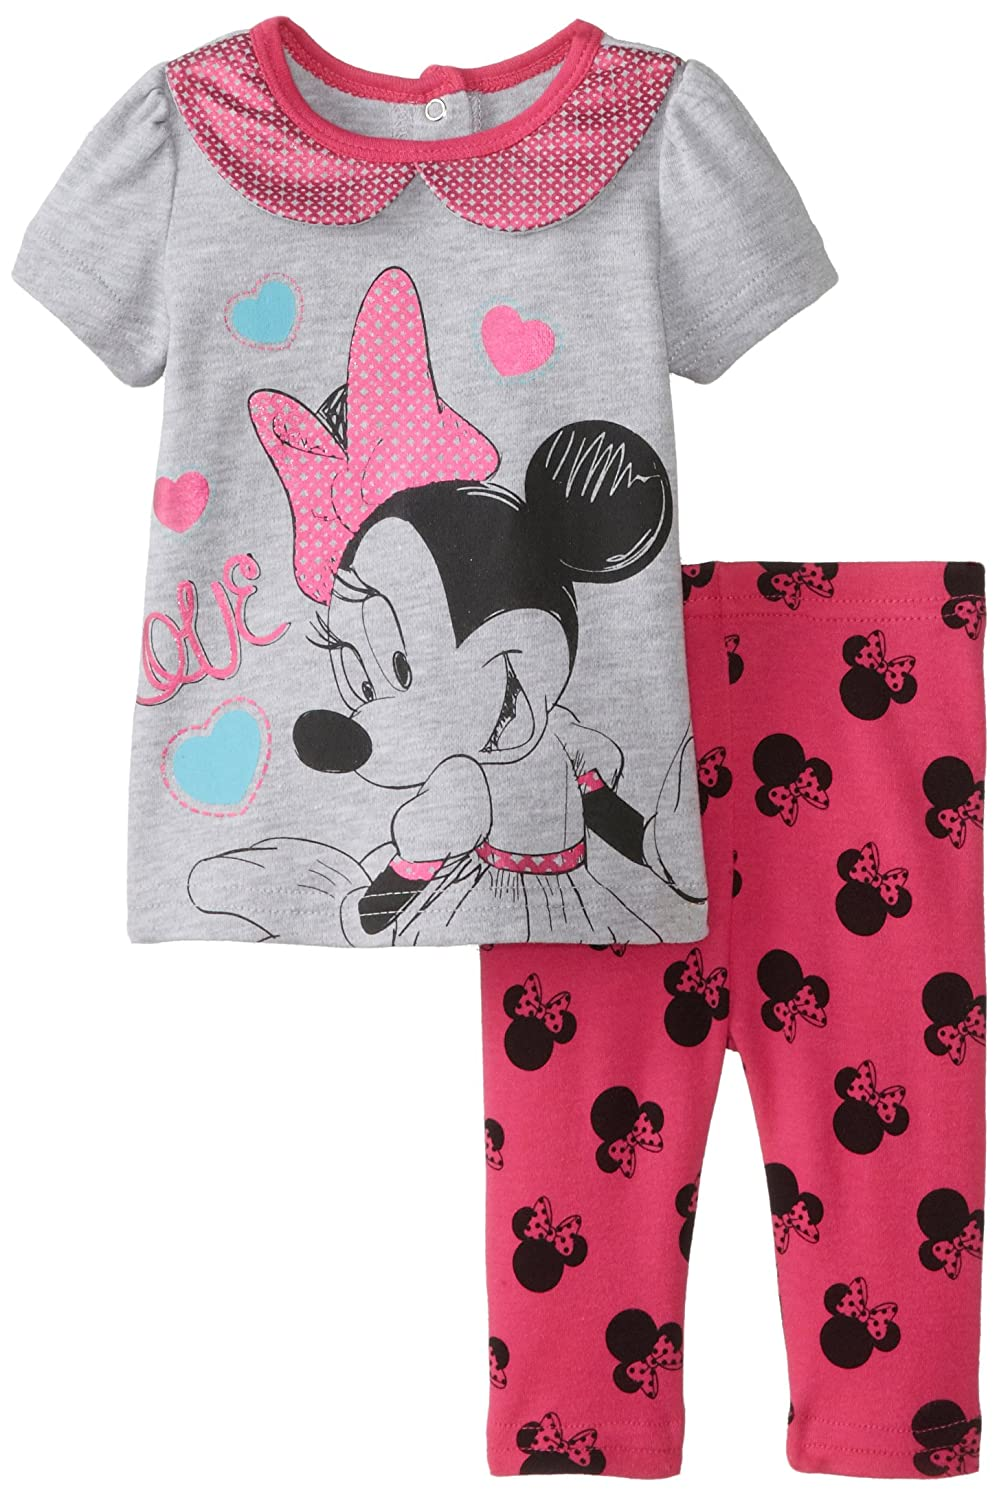 где купить  Disney Baby Baby-Girls Newborn 2 Piece Legging Set  по лучшей цене